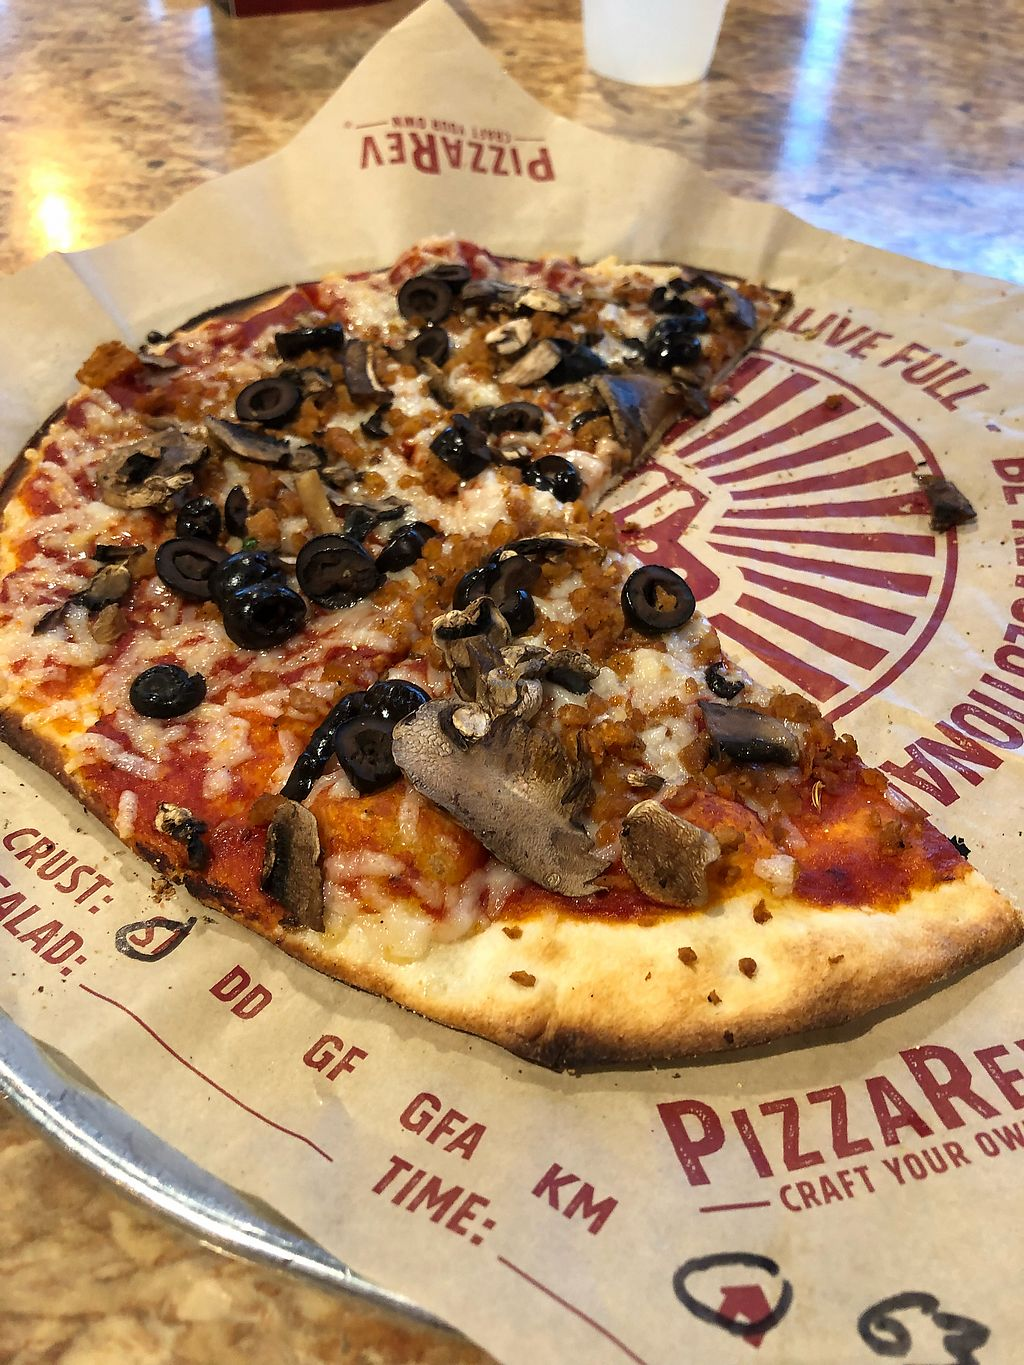 """Photo of PizzaRev  by <a href=""""/members/profile/Jadediana"""">Jadediana</a> <br/>Vegan pizza w/ cheese, sausage, mushrooms, and black olives  <br/> April 14, 2018  - <a href='/contact/abuse/image/116840/385515'>Report</a>"""